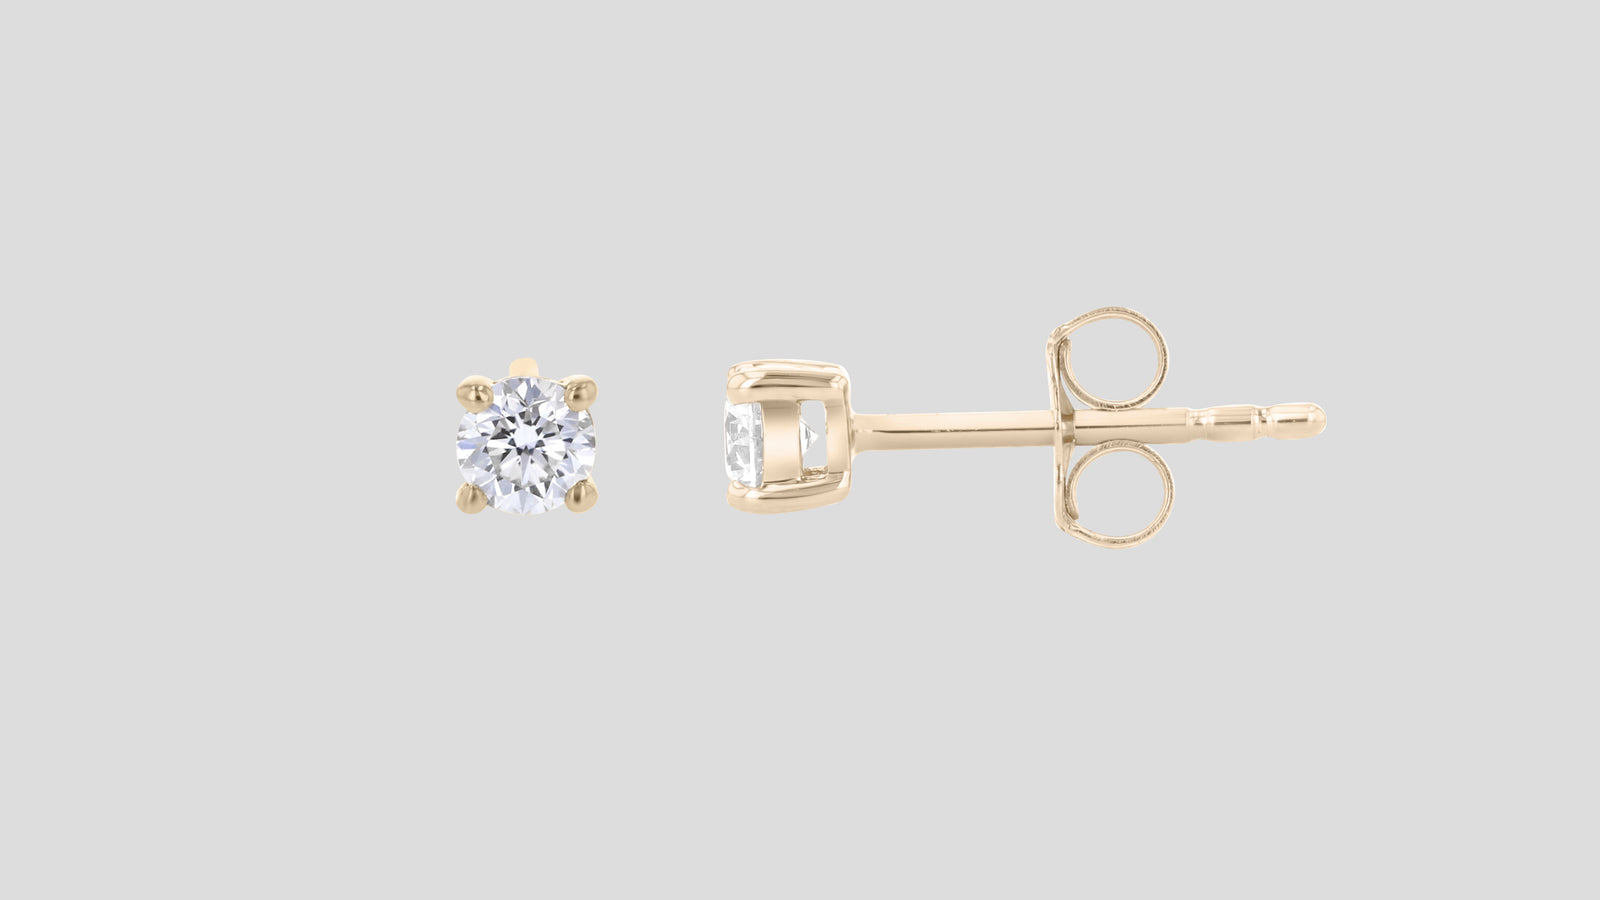 The Round Diamond Stud Earrings